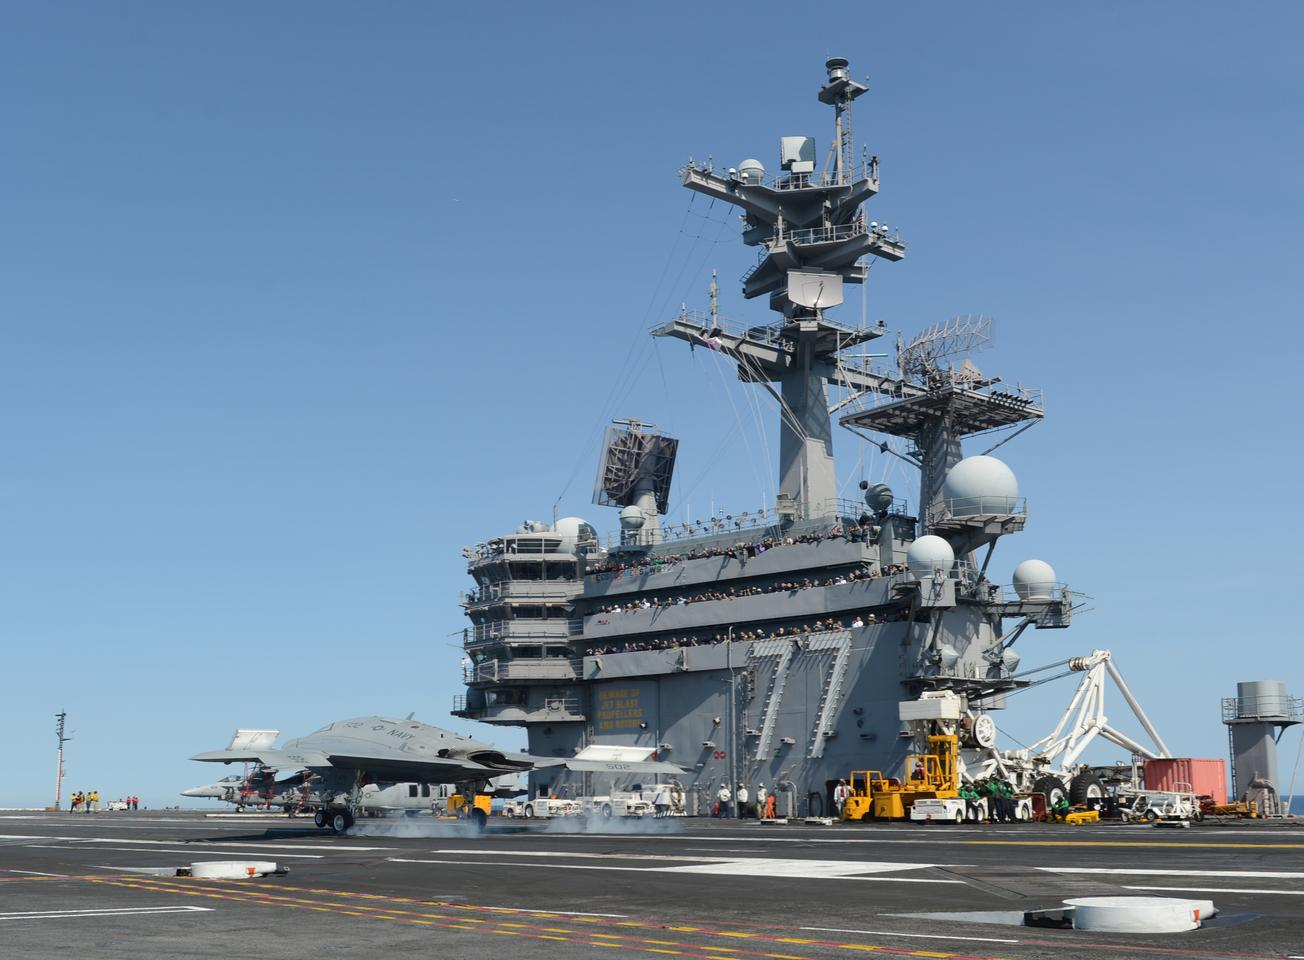 X-47B briefly touching the flight deck (Image: US Navy by Mass Communication Specialist 2nd Class Timothy Walter)